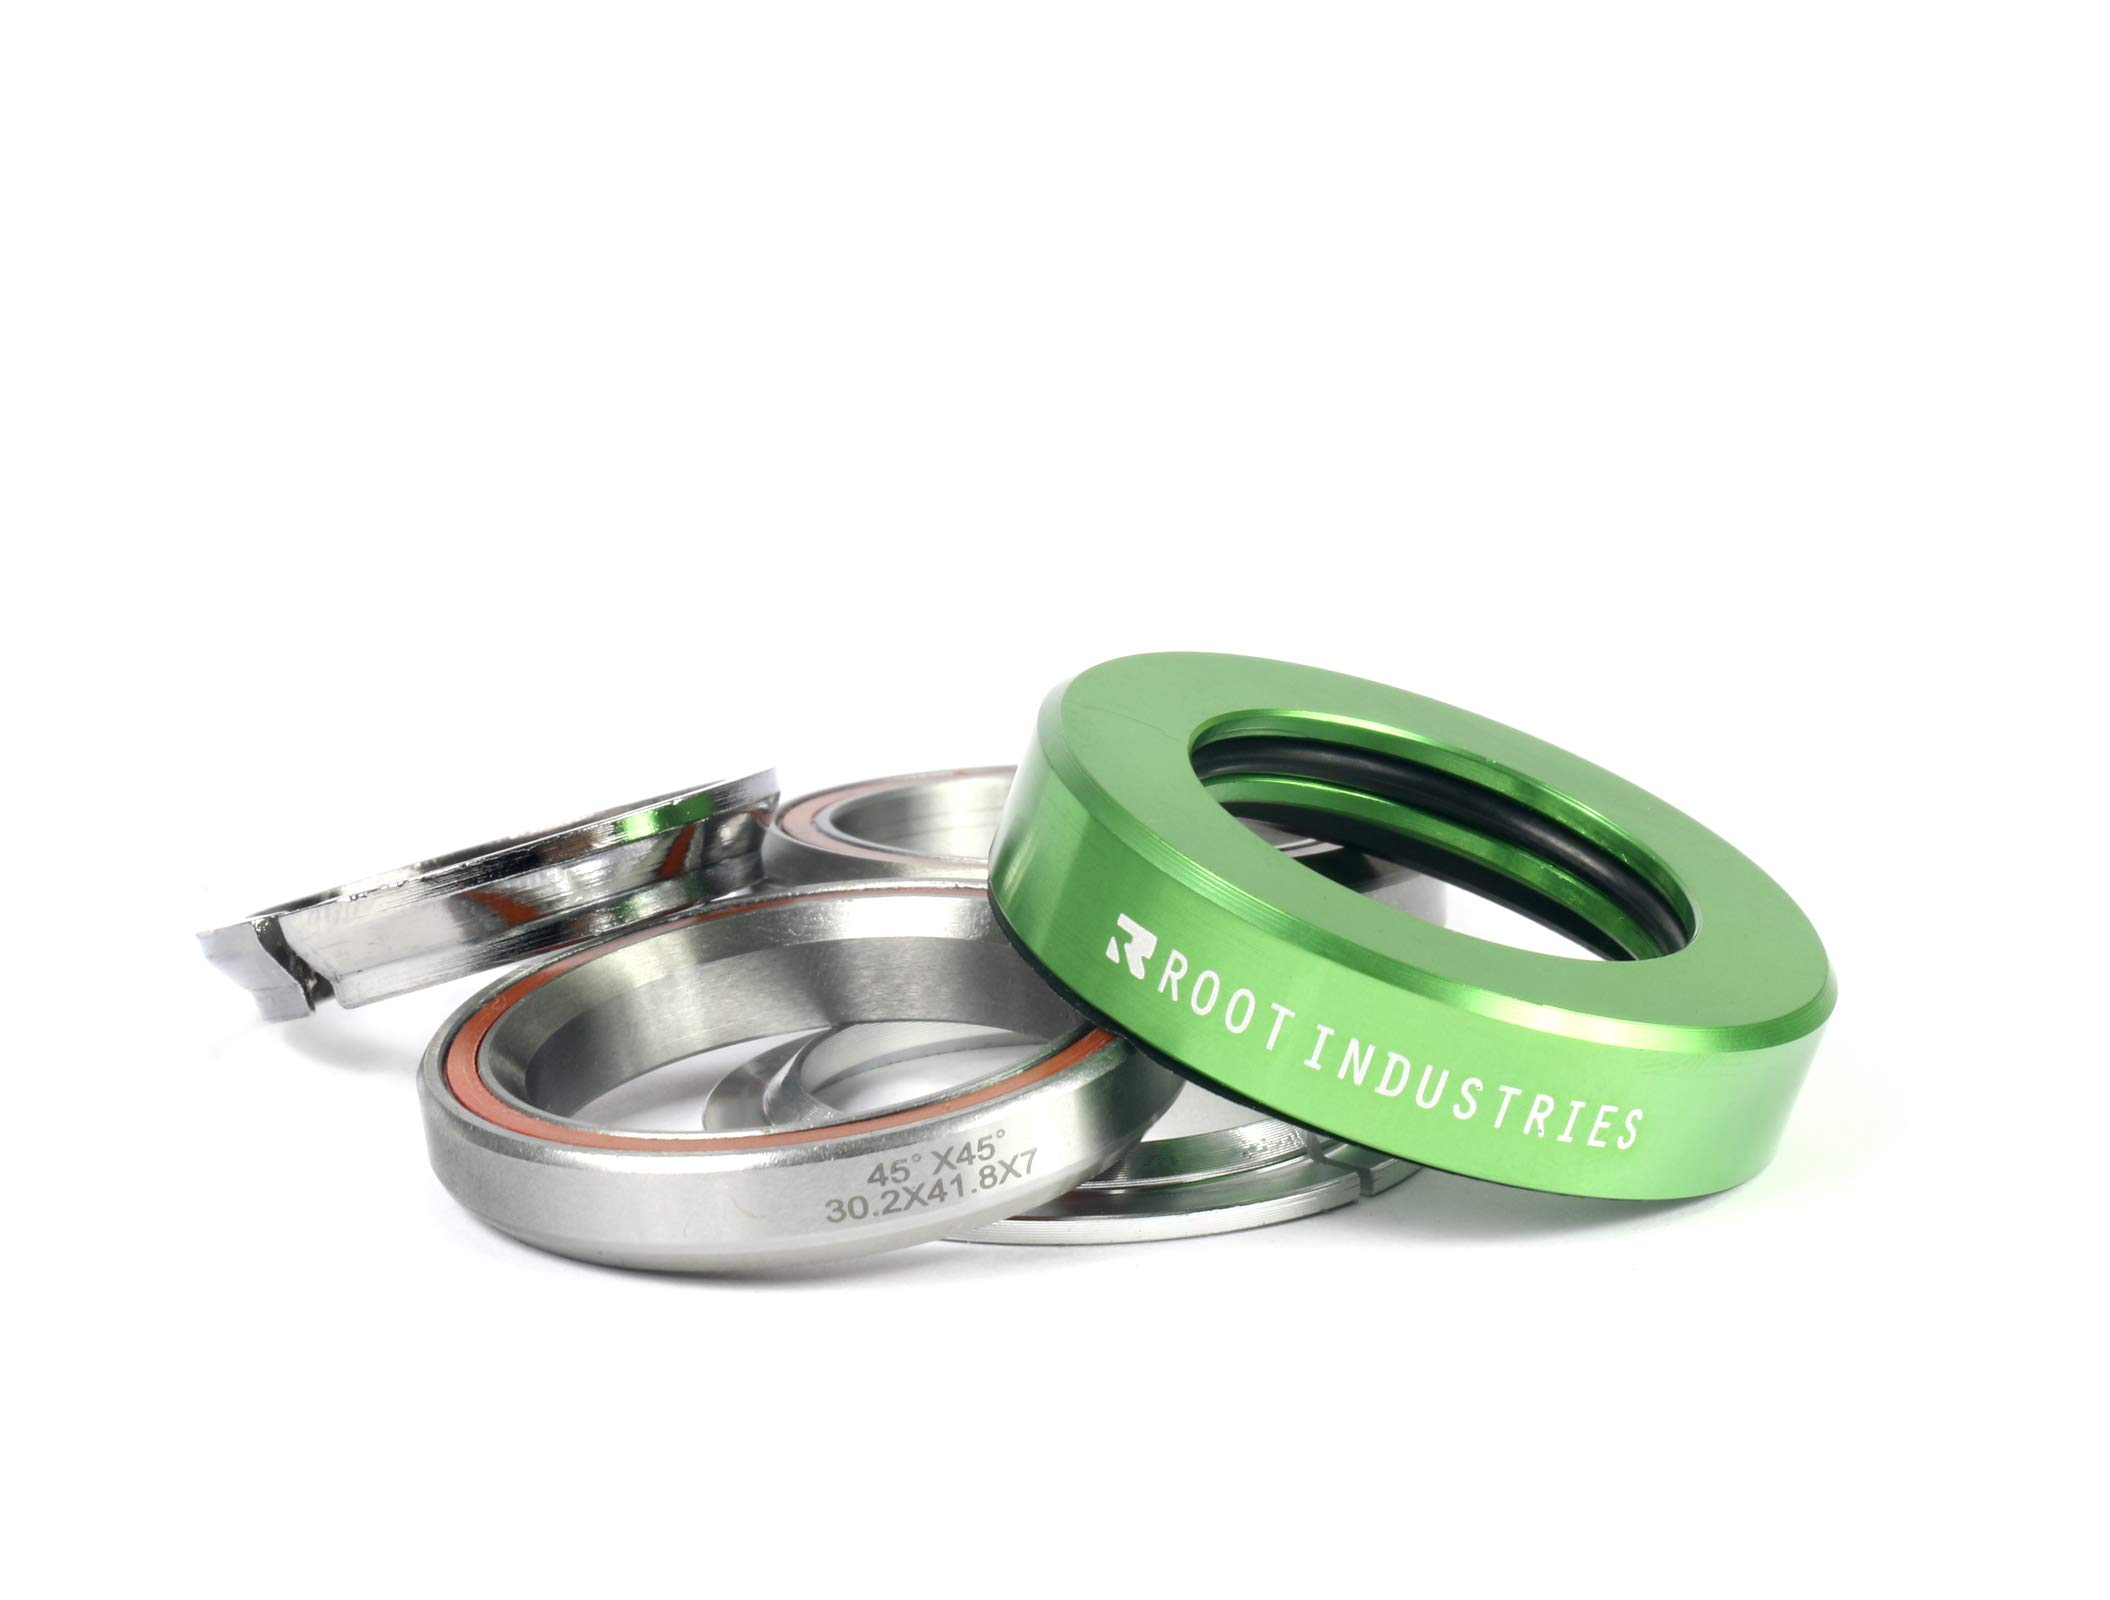 Root Industries AIR Headset - Trick/Stunt Scooter Headset - 1-⅛ Freestyle BMX/Scooter Professional Integrated Headset - Premium Color Options Sealed Fast (Green)